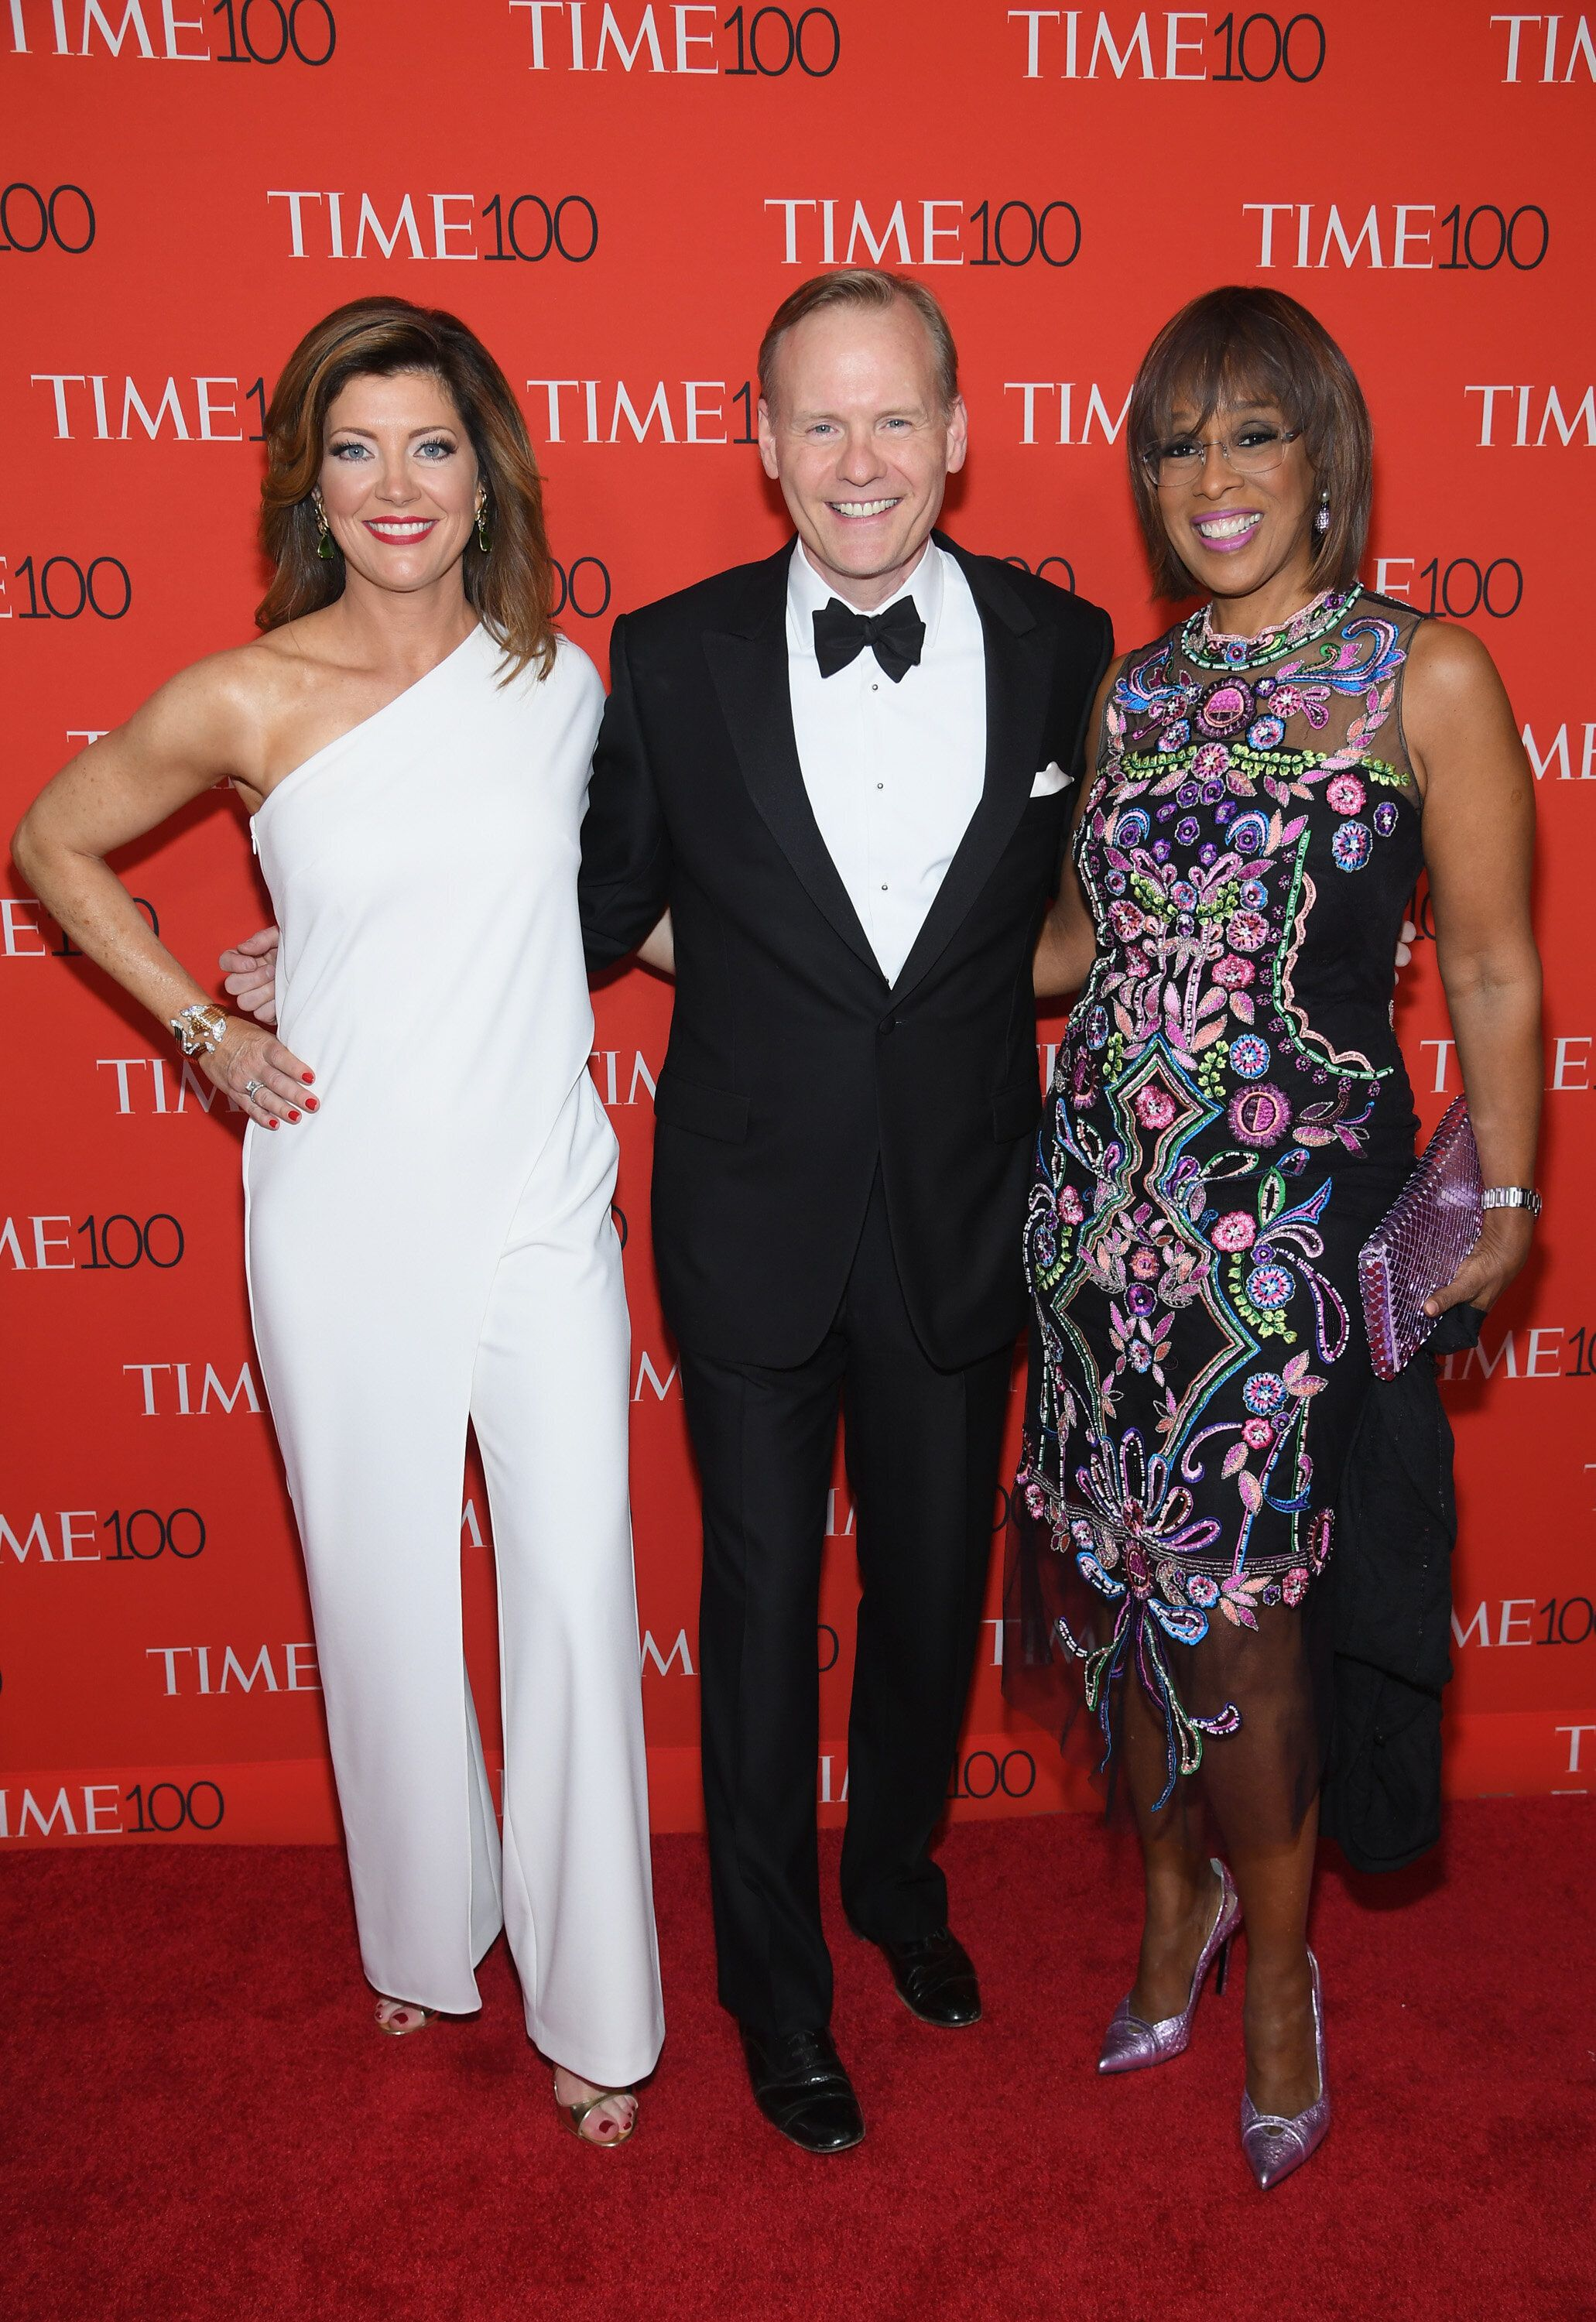 NEW YORK, NY - APRIL 24:  Norah O'Donnell, John Dickerson and Gayle King attend the 2018 Time 100 Gala at Jazz at Lincoln Center on April 24, 2018 in New York City.  (Photo by Dimitrios Kambouris/Getty Images for Time)